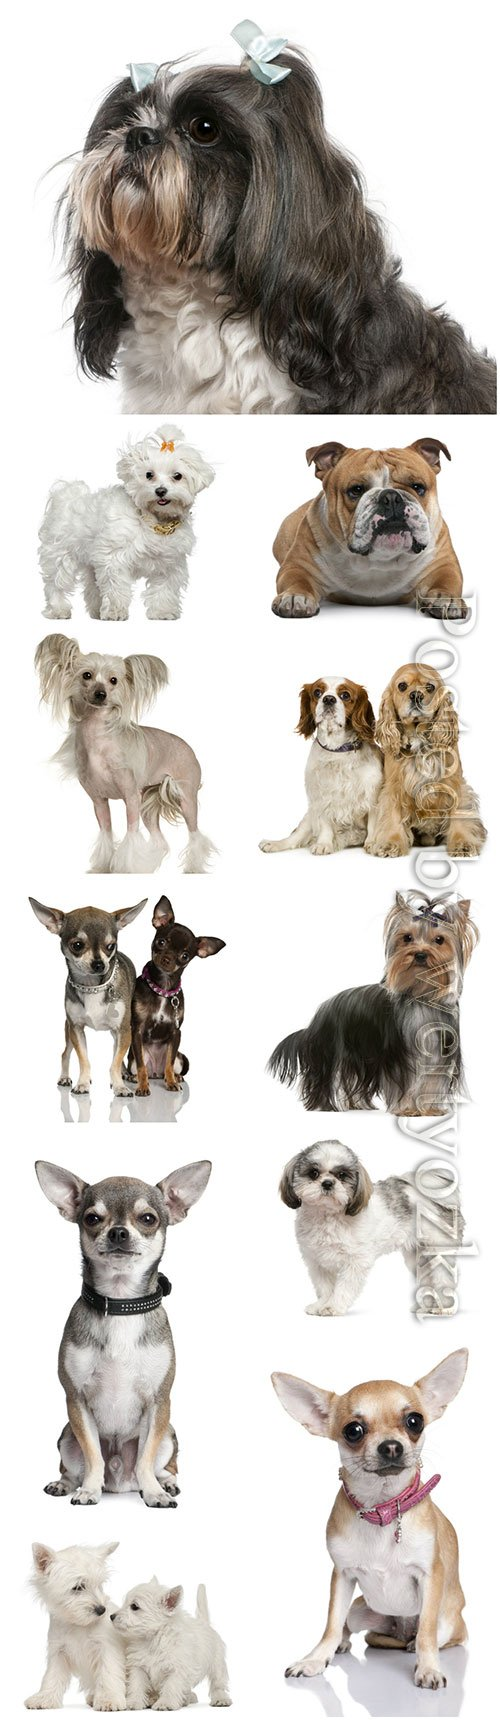 Dogs of different breeds beautiful stock photo